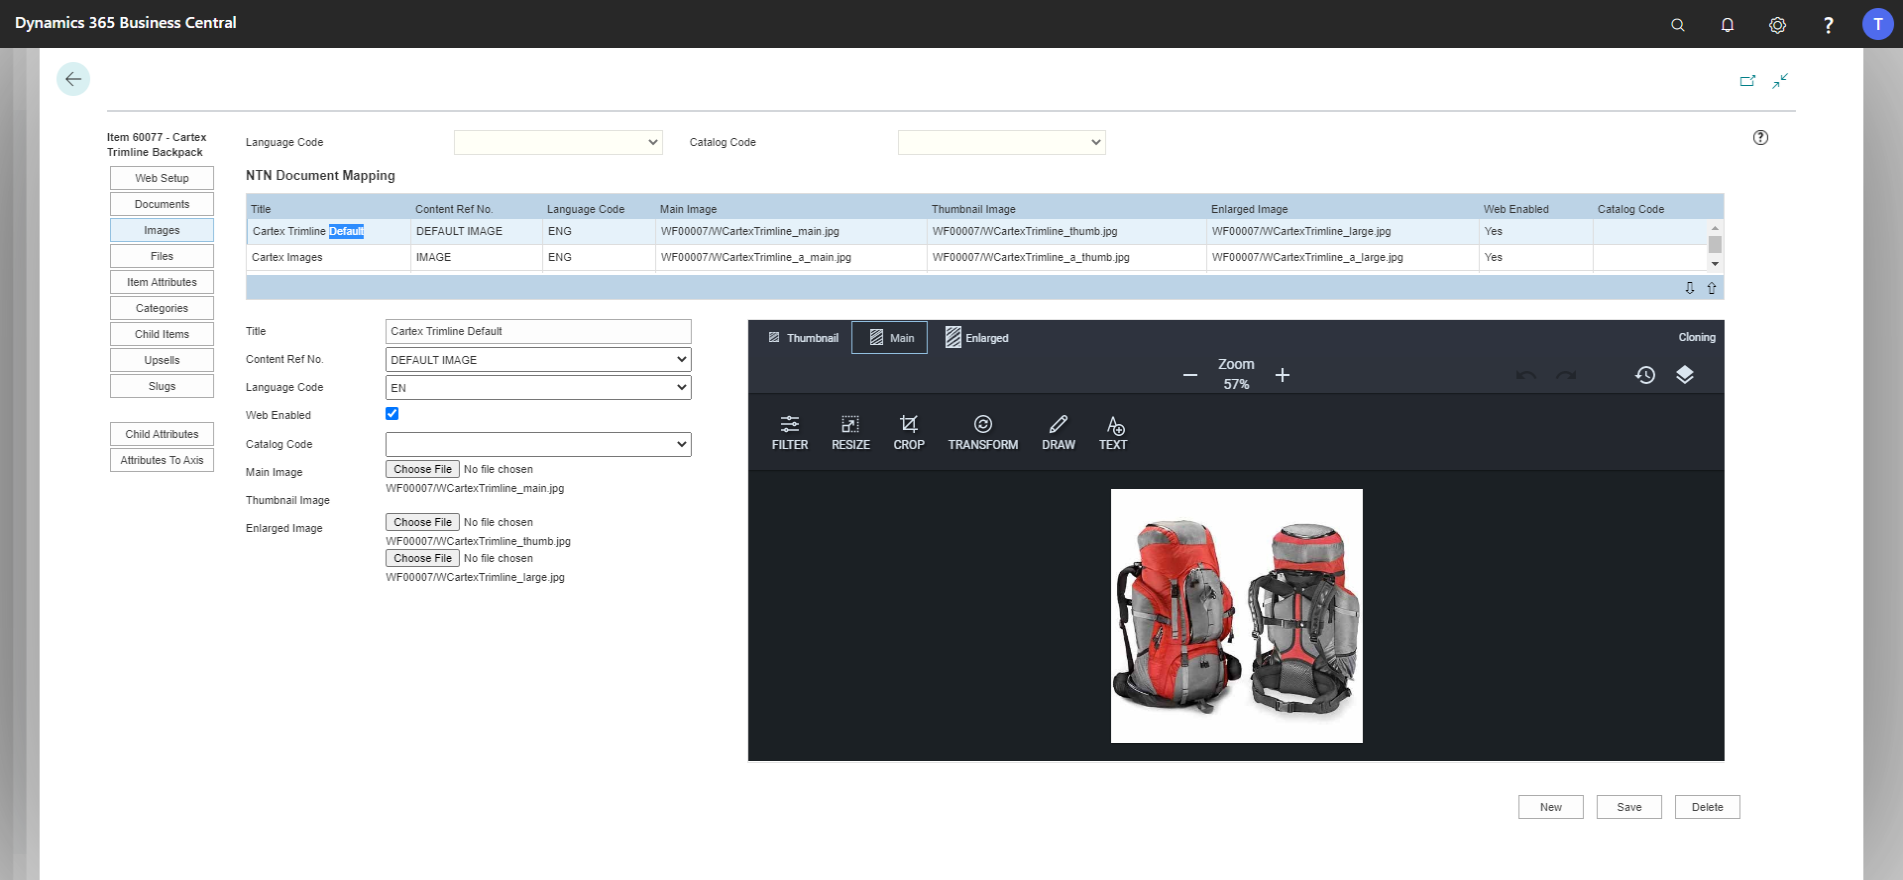 Dynamics-integrated CMS enables easy inclusion and manipulation of images, right in Business Central/NAV.